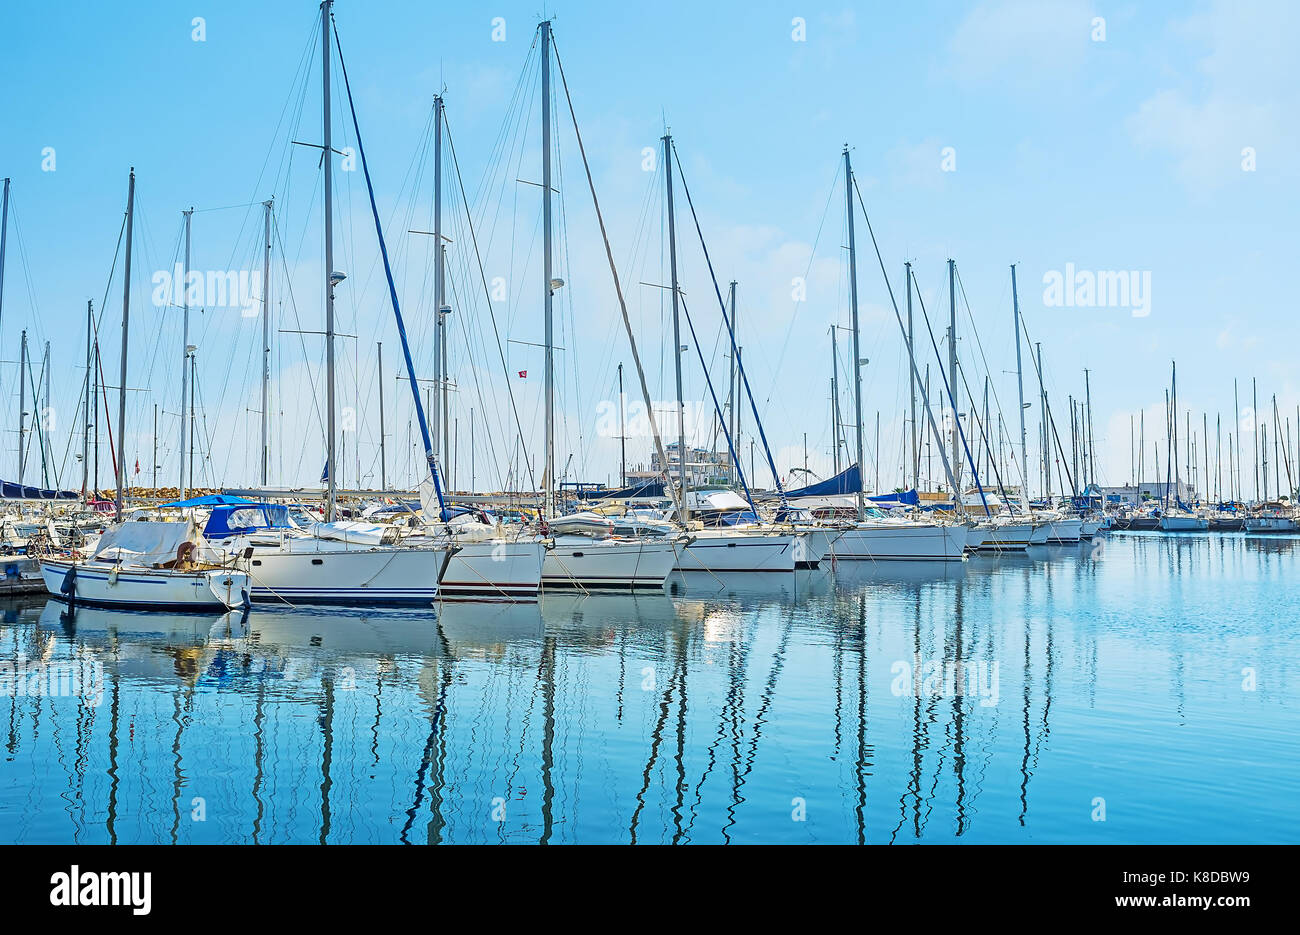 The row of modern white sail yachts, moored in modern marina of resort, Monastir, Tunisia. - Stock Image